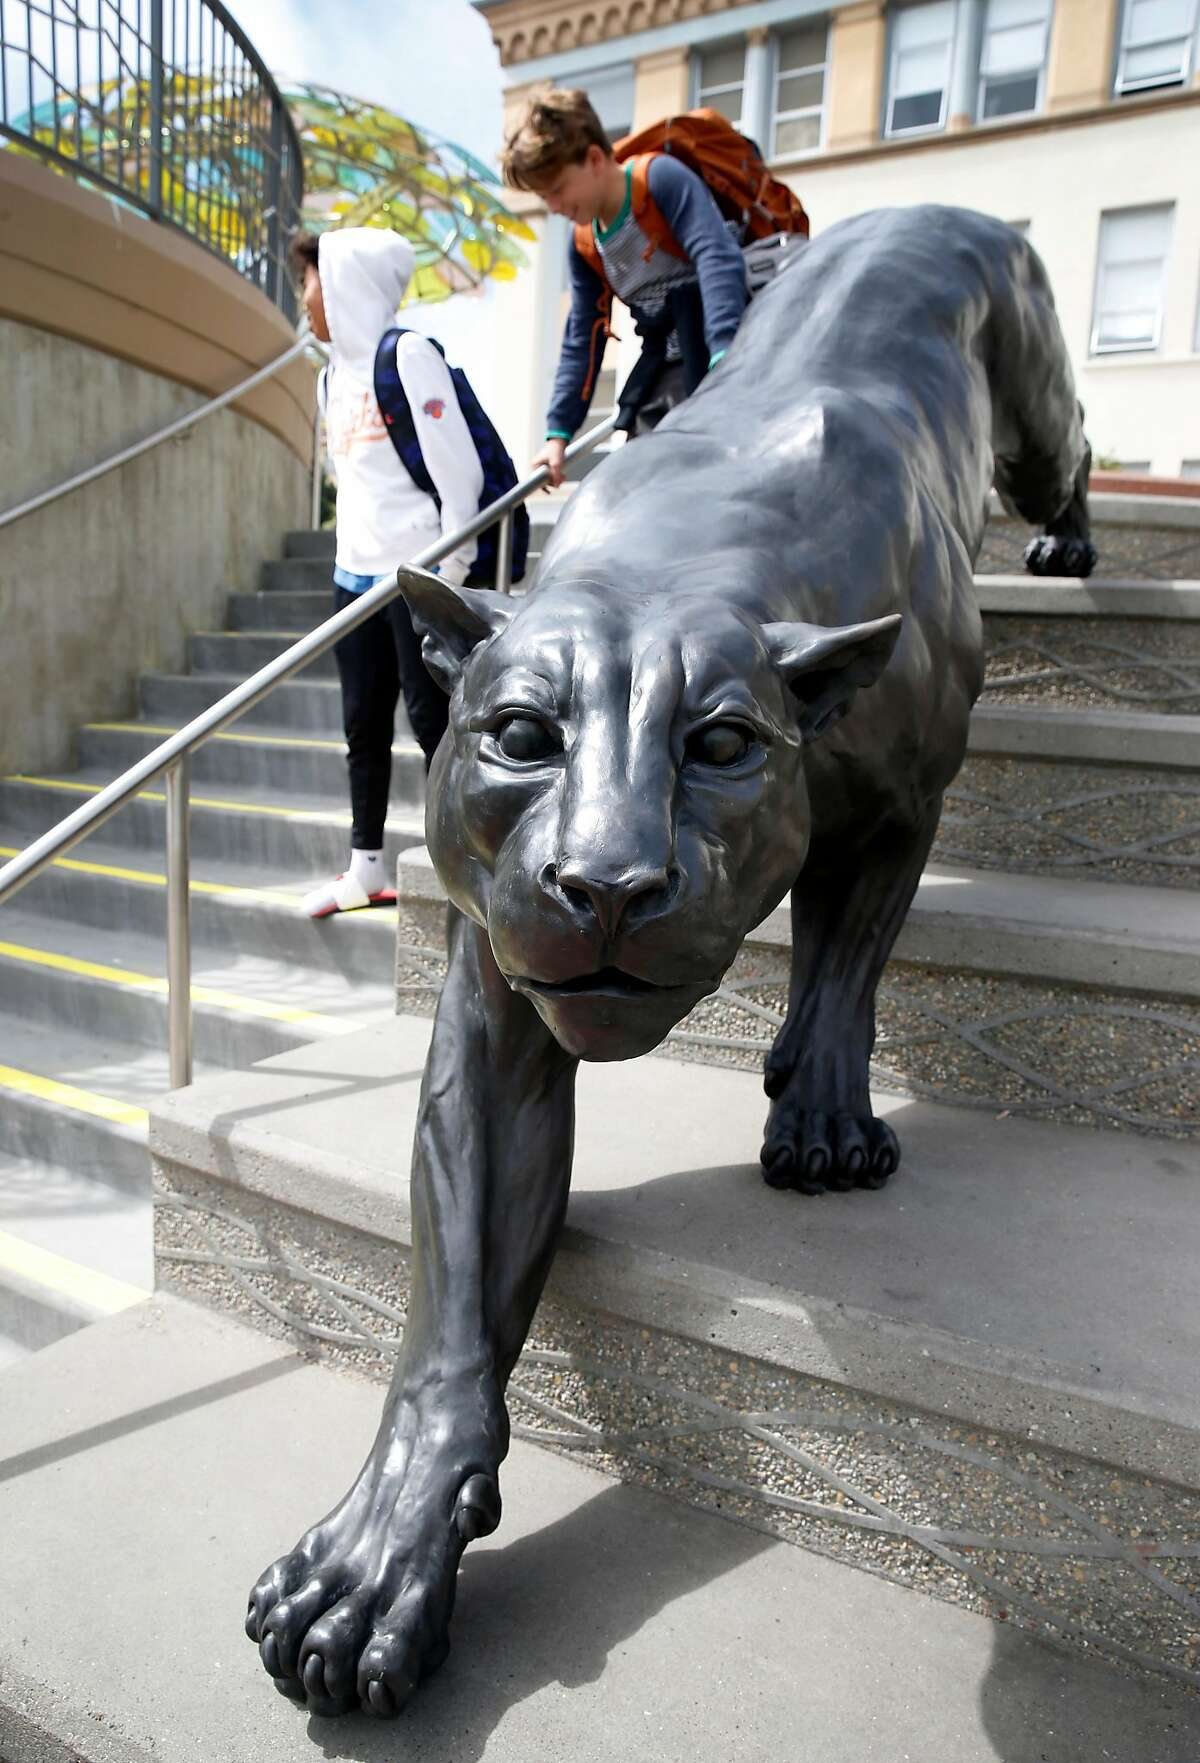 Presidio Middle School students gather near a sculpture of a panther, the school's mascot, installed in the newly renovated schoolyard during the lunch break in San Francisco, Calif. on Tuesday, Sept. 10, 2019. Salesforce provided funds to refurbish and upgrade the schoolyard and library.